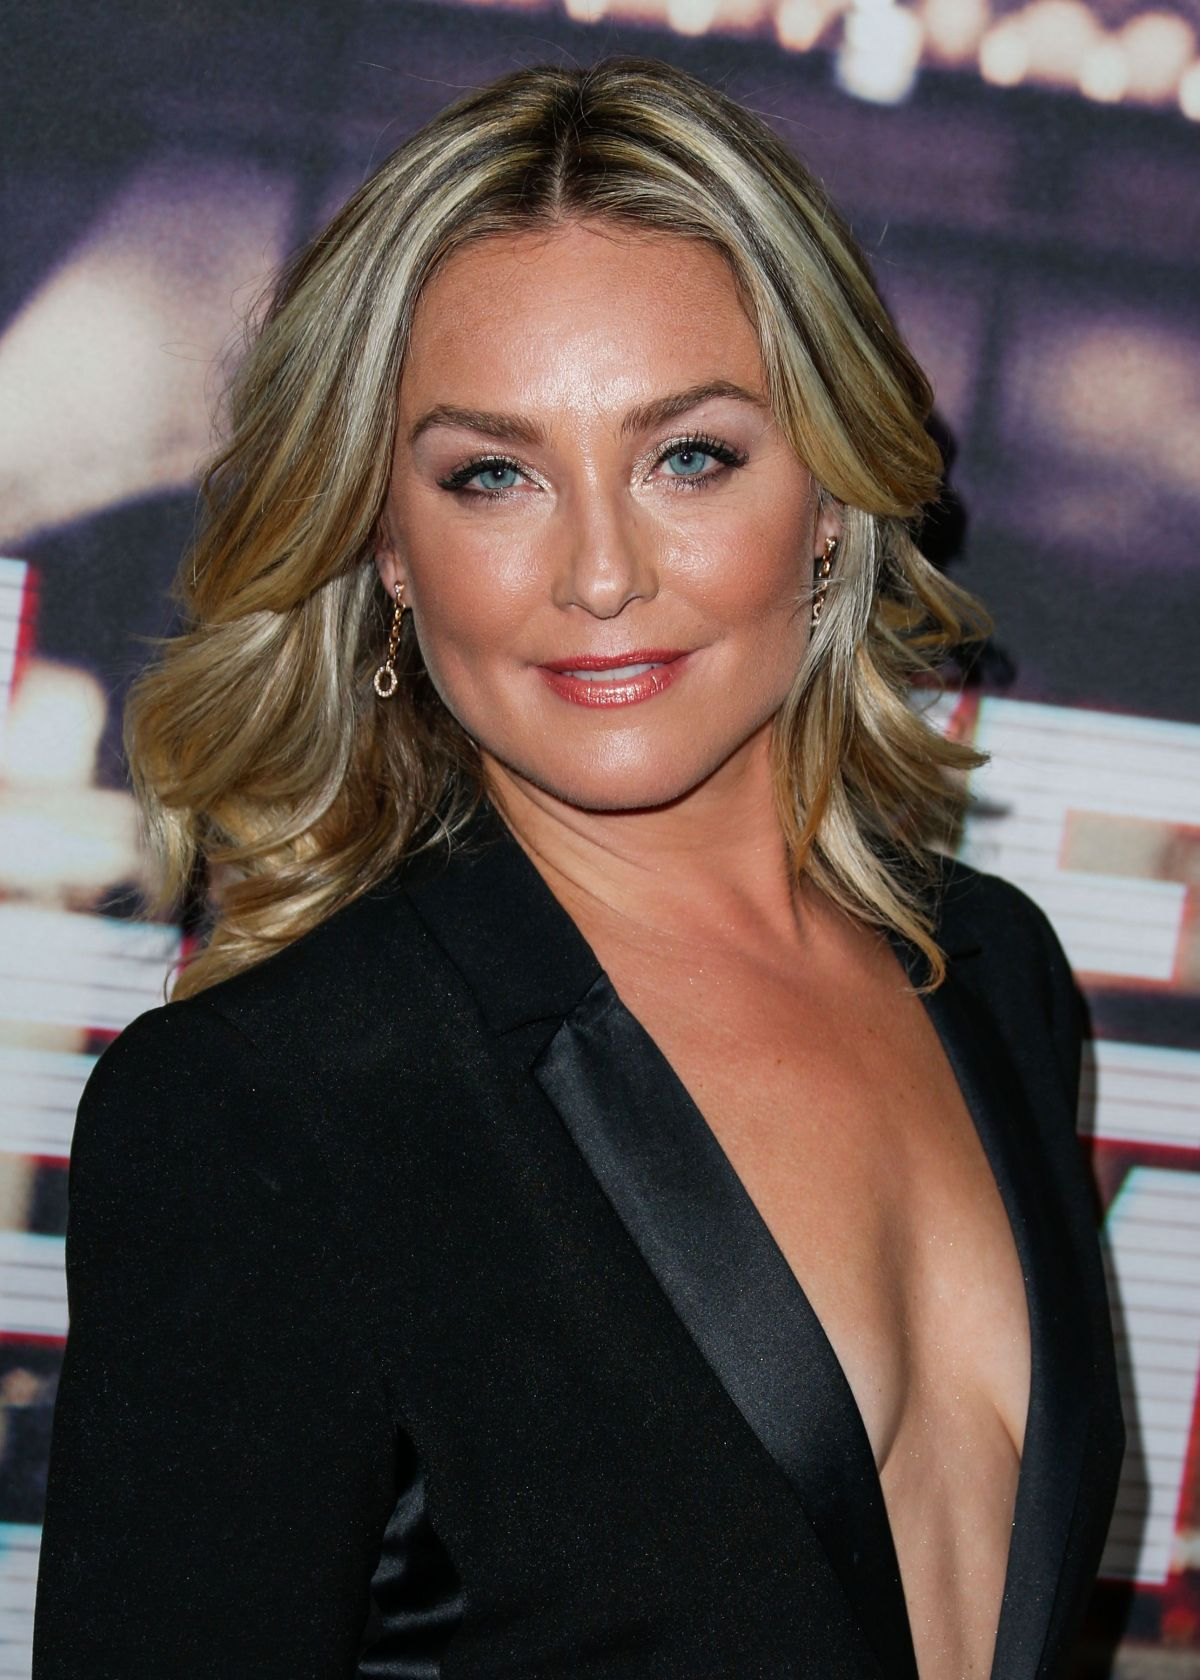 Cleavage Elisabeth Rohm naked photo 2017